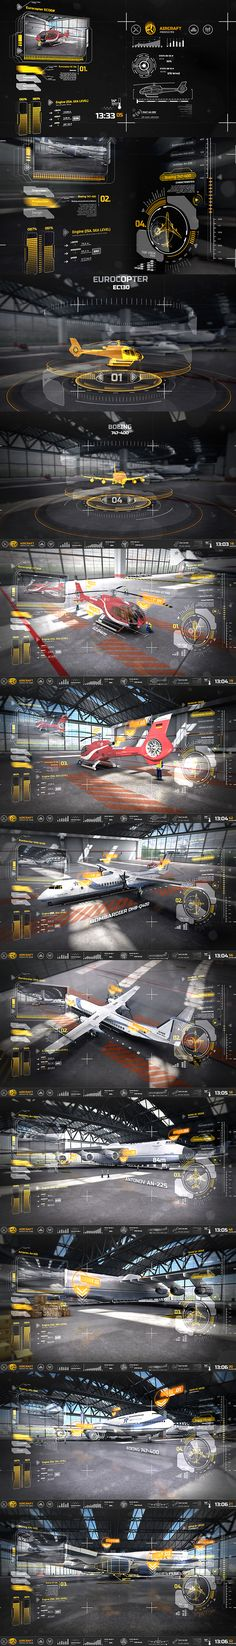 #2RISE VENTUZ AIRCRAFT DEMO by ~Jedi88 on deviantART